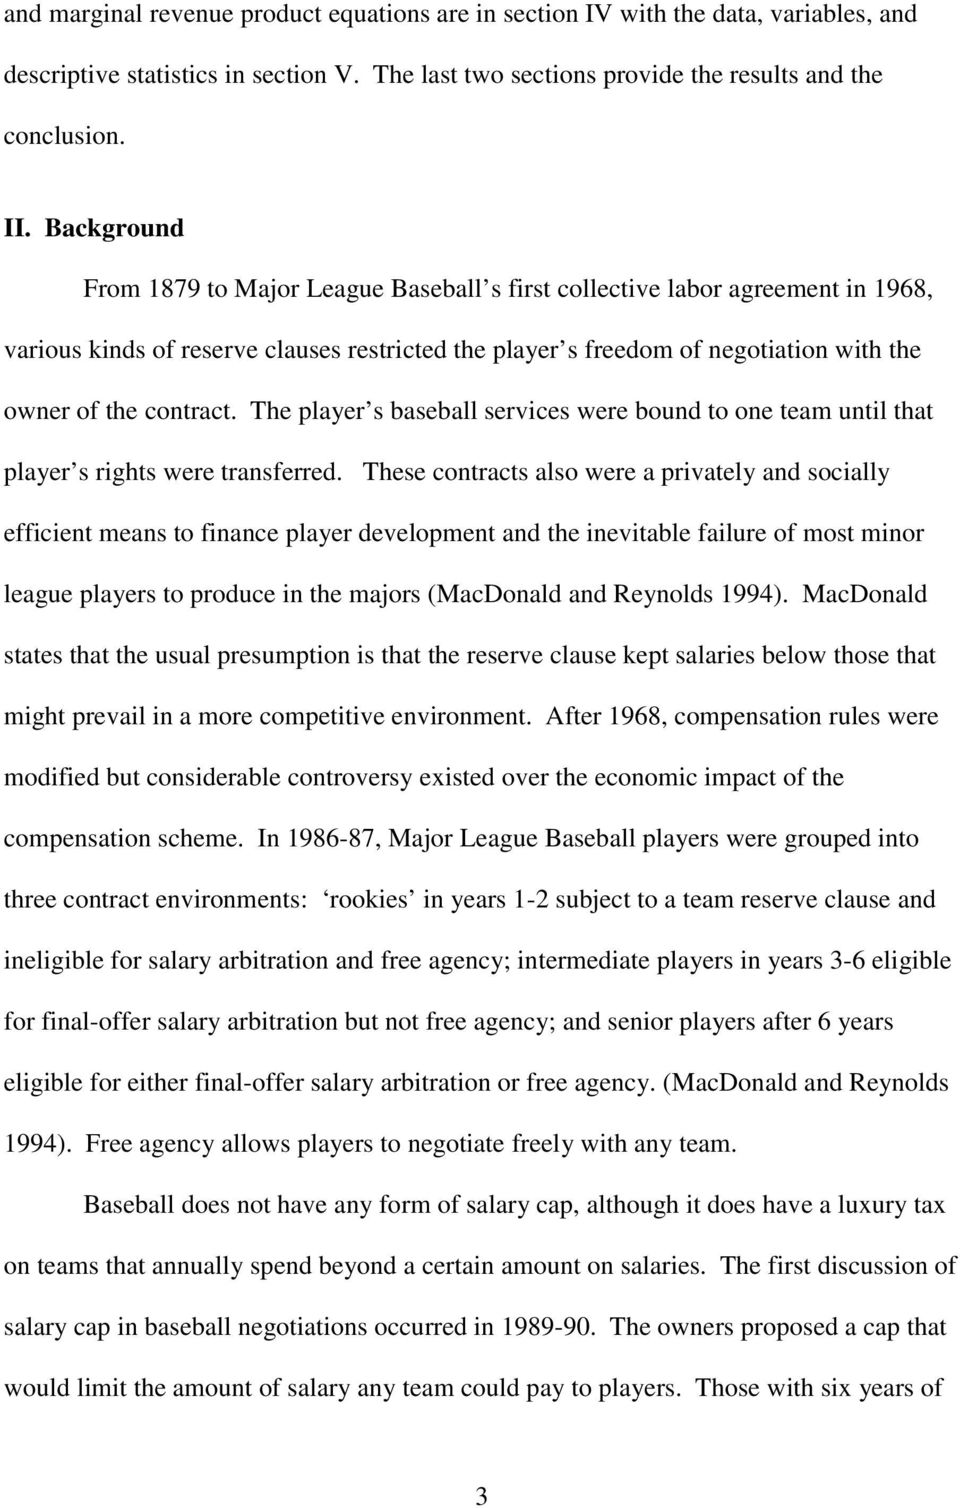 contract. The player s baseball services were bound to one team until that player s rights were transferred.